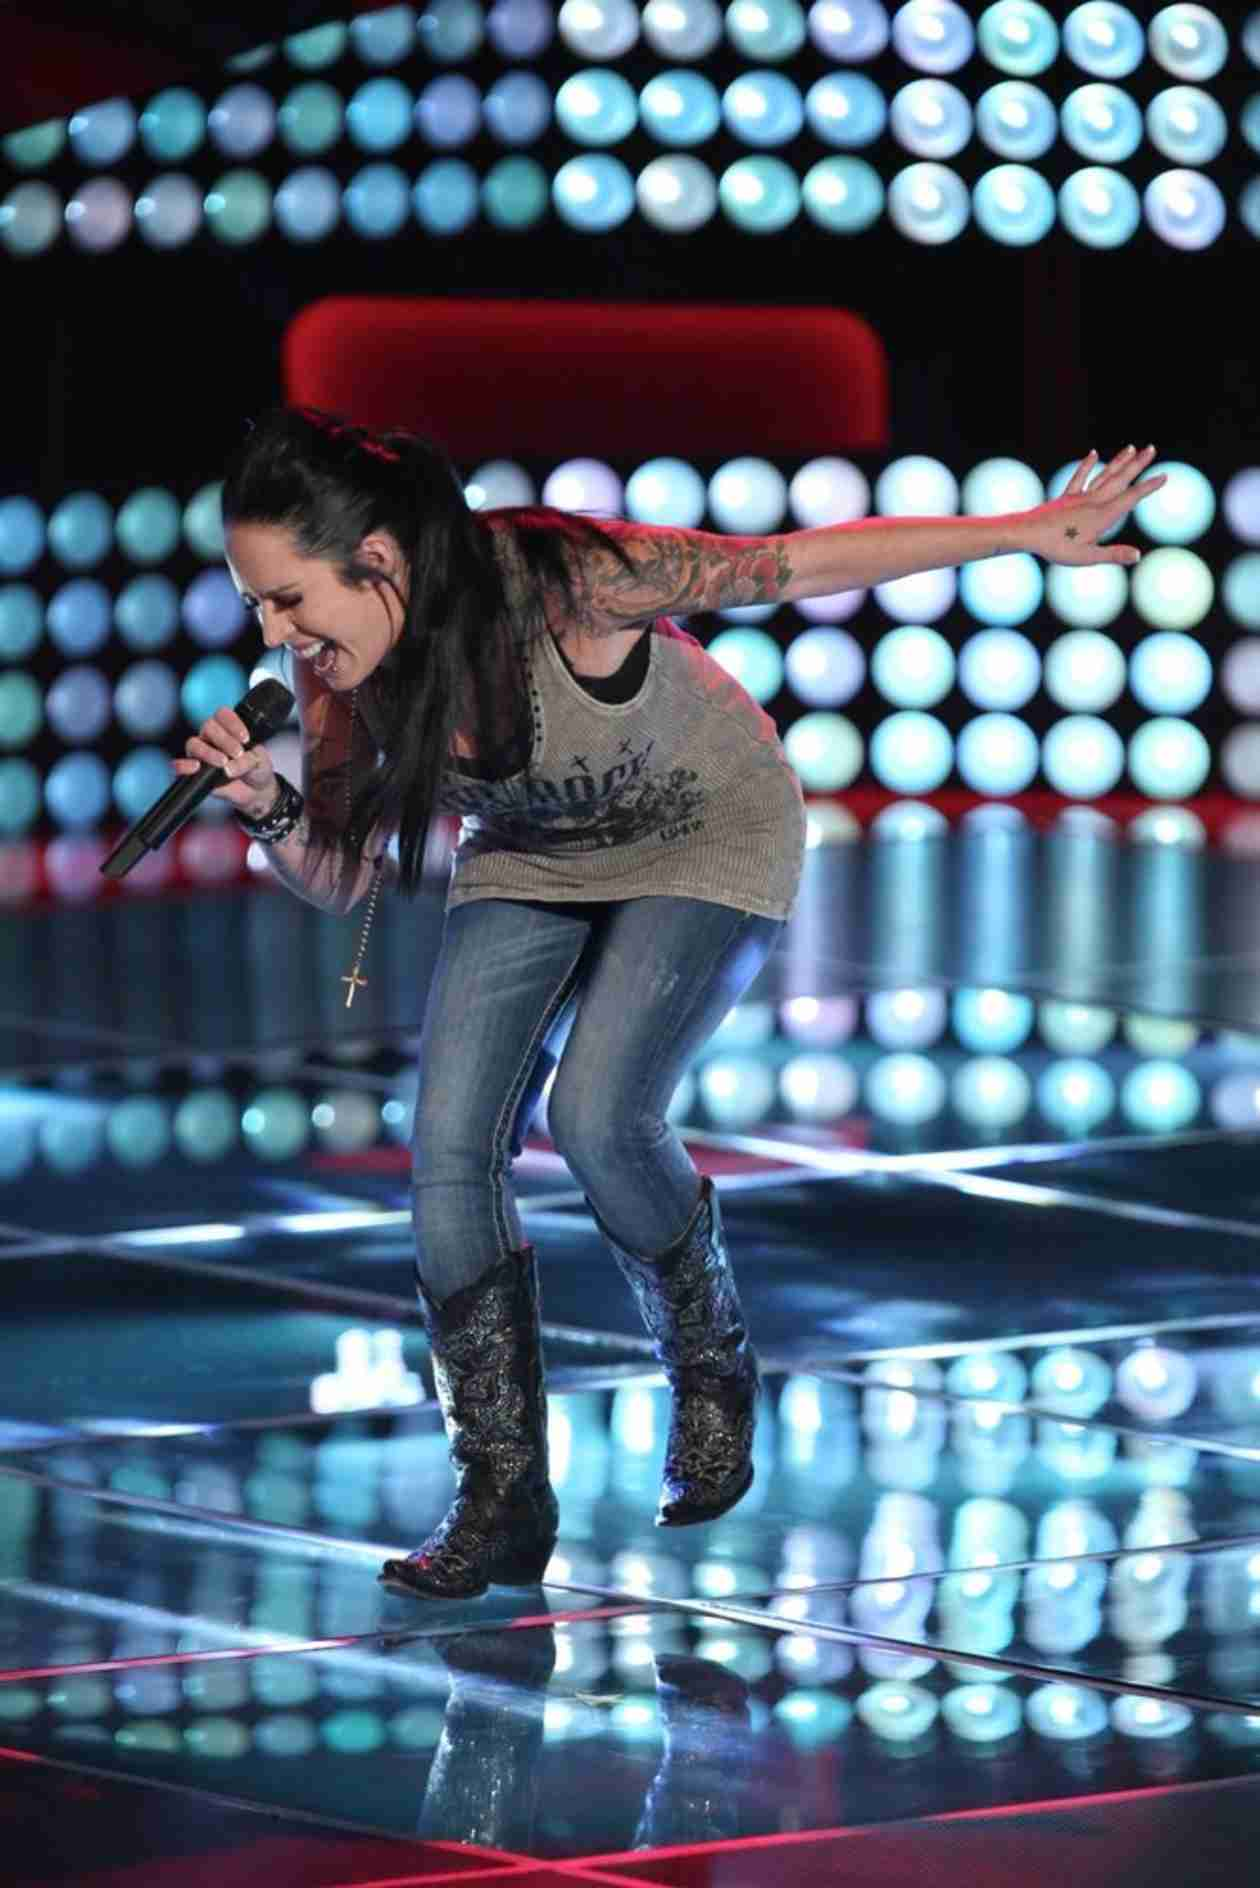 Kat Perkins Sings on The Voice 2014 Season 6 Blind Auditions (VIDEO)